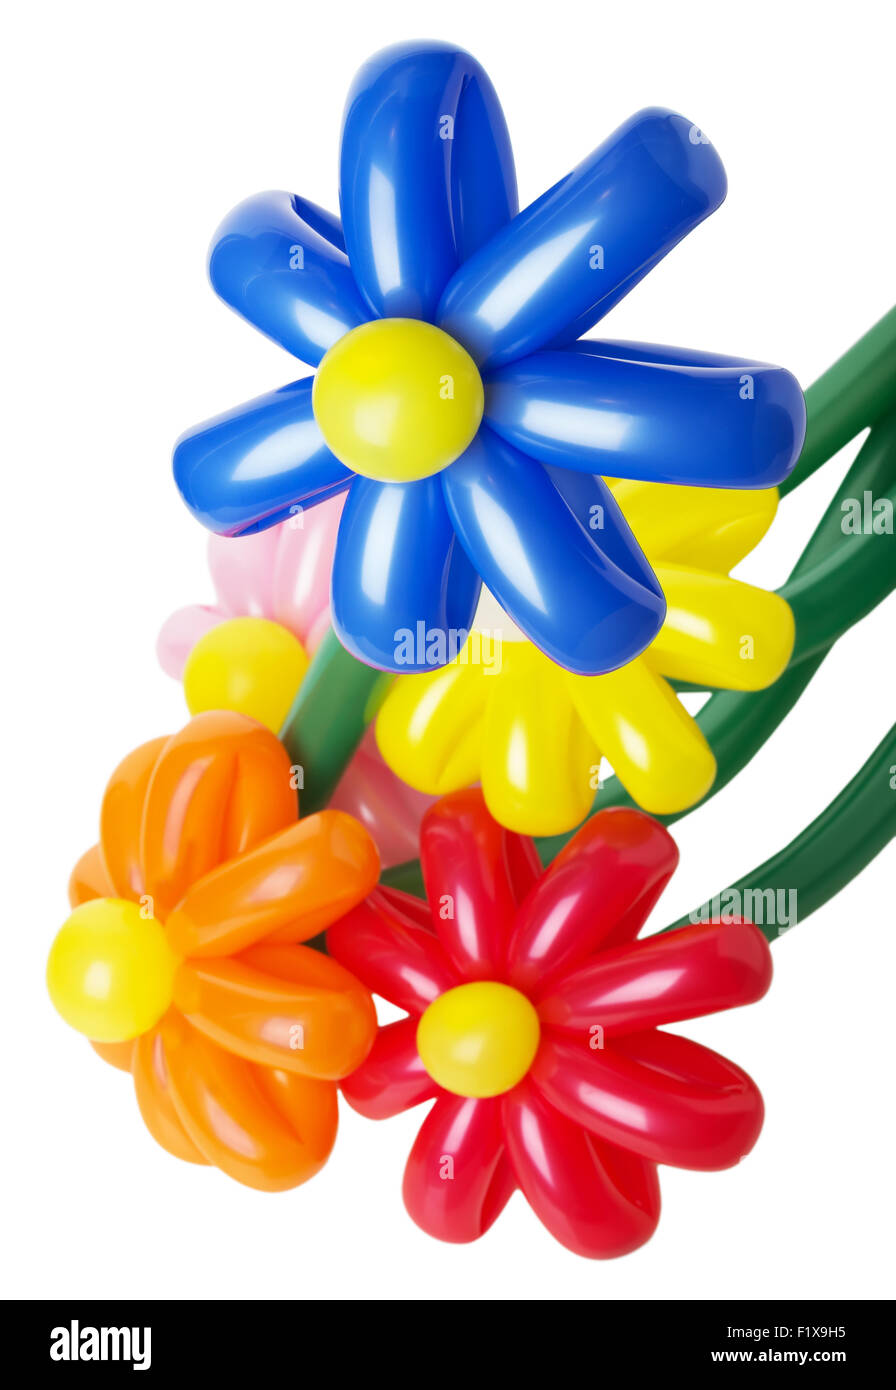 Bouquet With Colorful Balloon Flowers On The White Background Stock